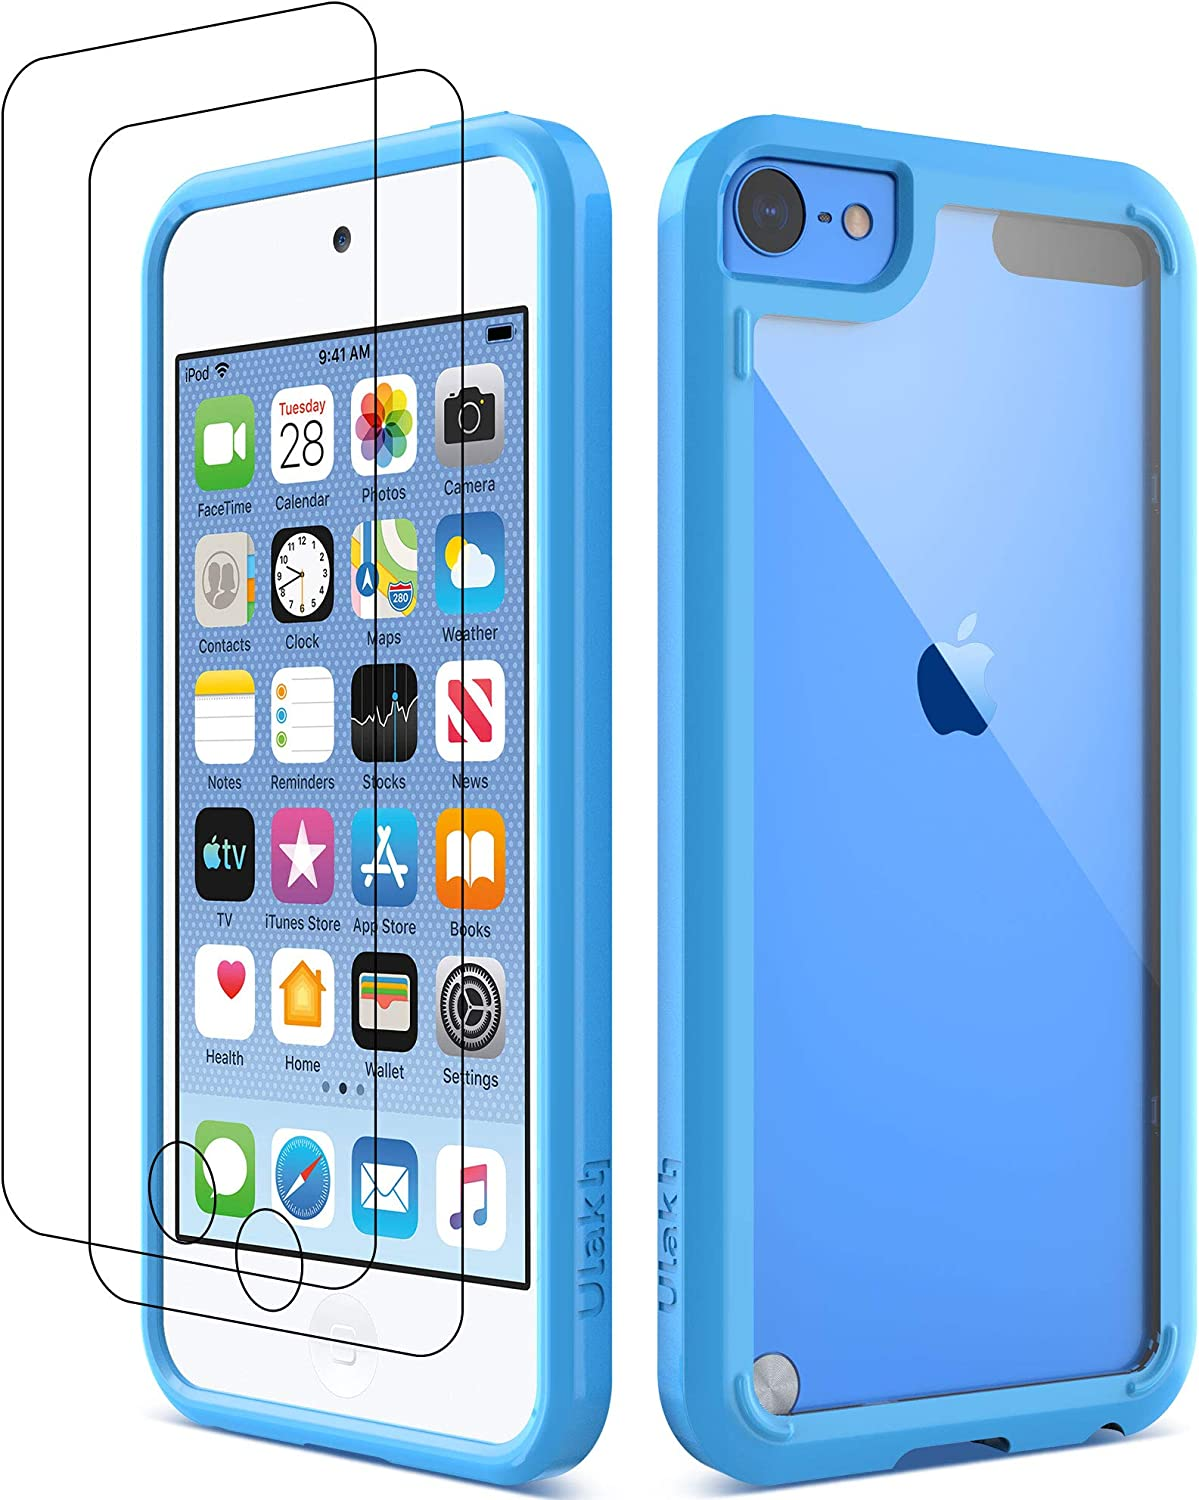 ULAK iPod Touch 7 Case, iPod Touch 6 5 Case with 2 Screen Protectors, Clear Slim Soft TPU Bumper Hard Case for Apple iPod Touch 5 / 6th / 7th Generation (Latest Model 2019 Released), Blue